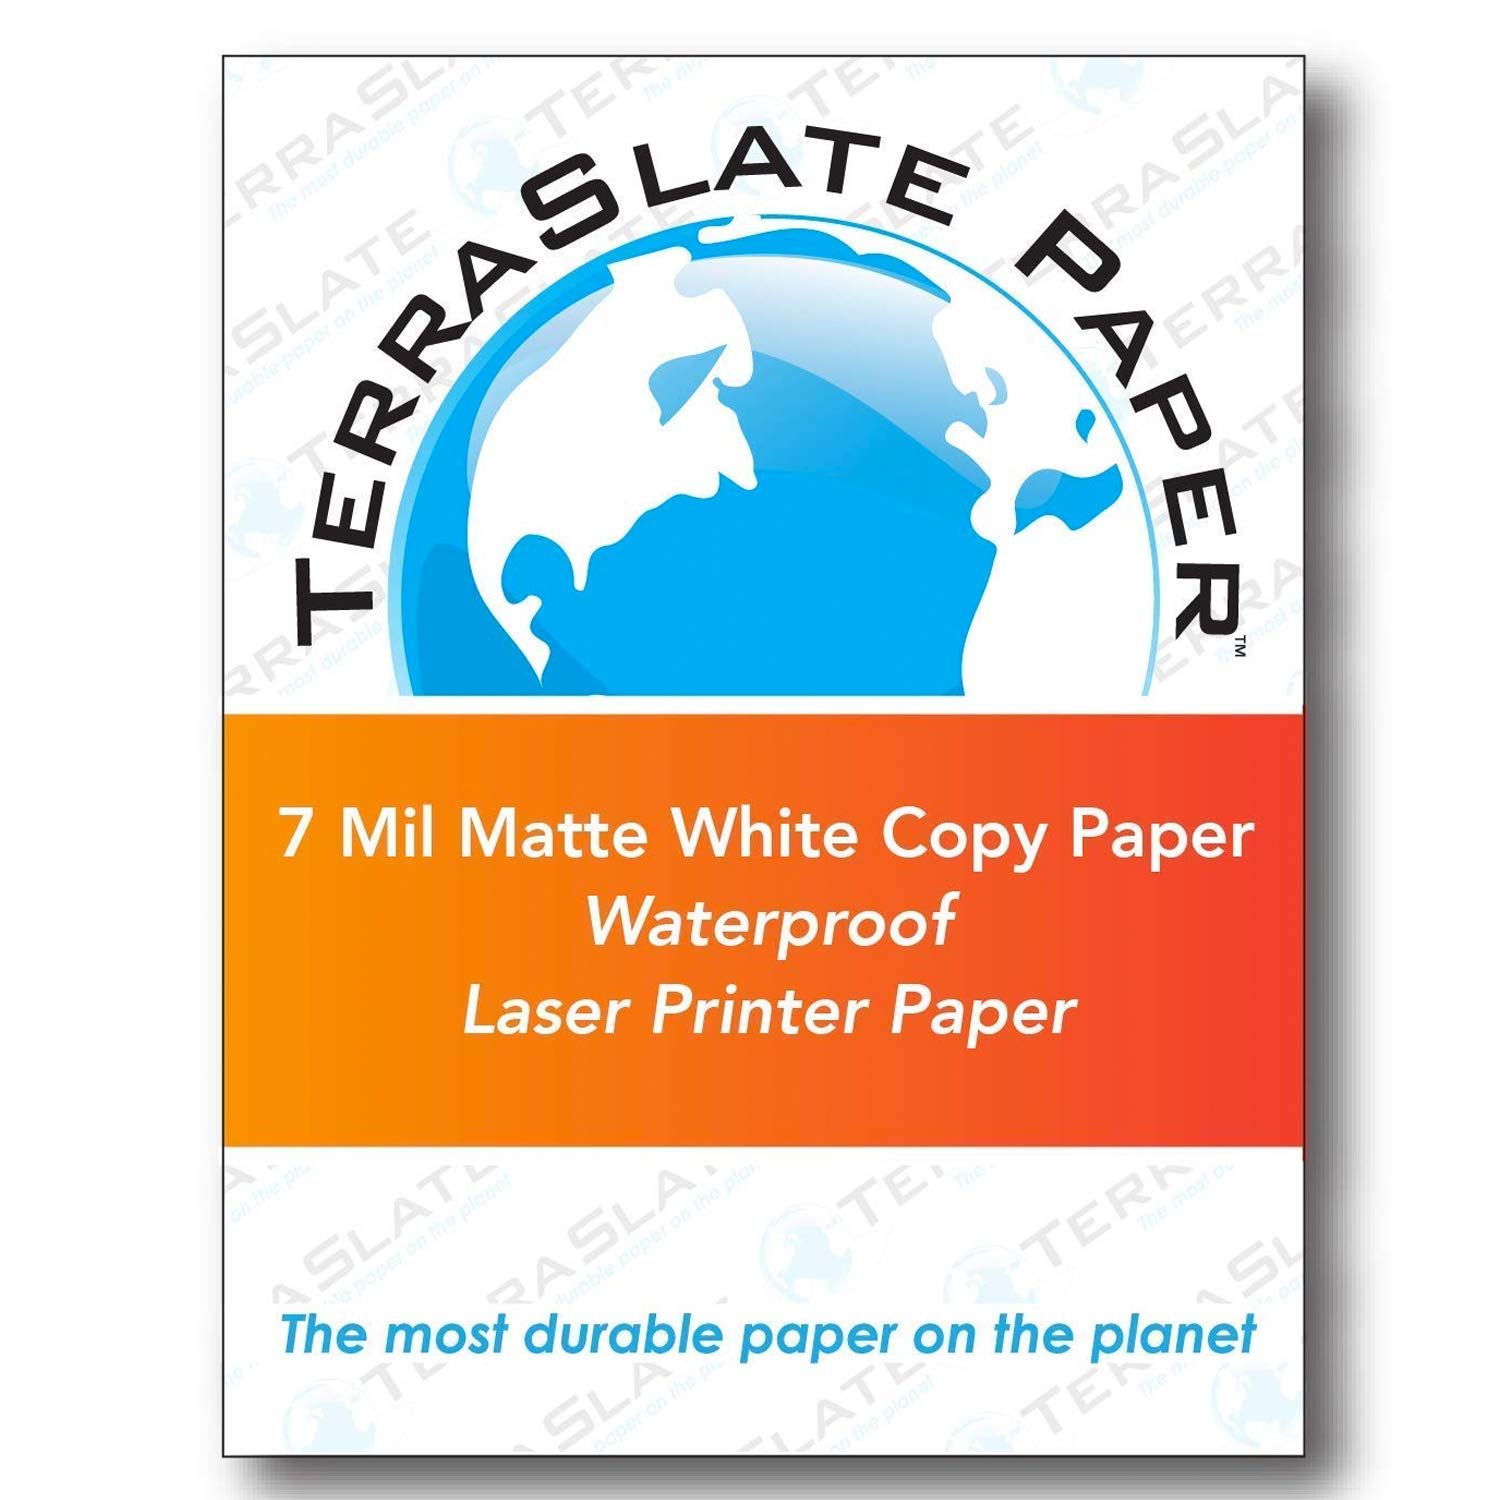 TerraSlate Copy Paper Waterproof Laser Printer, Rain Weatherproof, 7 MIL, 8.5x11-inch, 50 Sheets by TerraSlate Paper